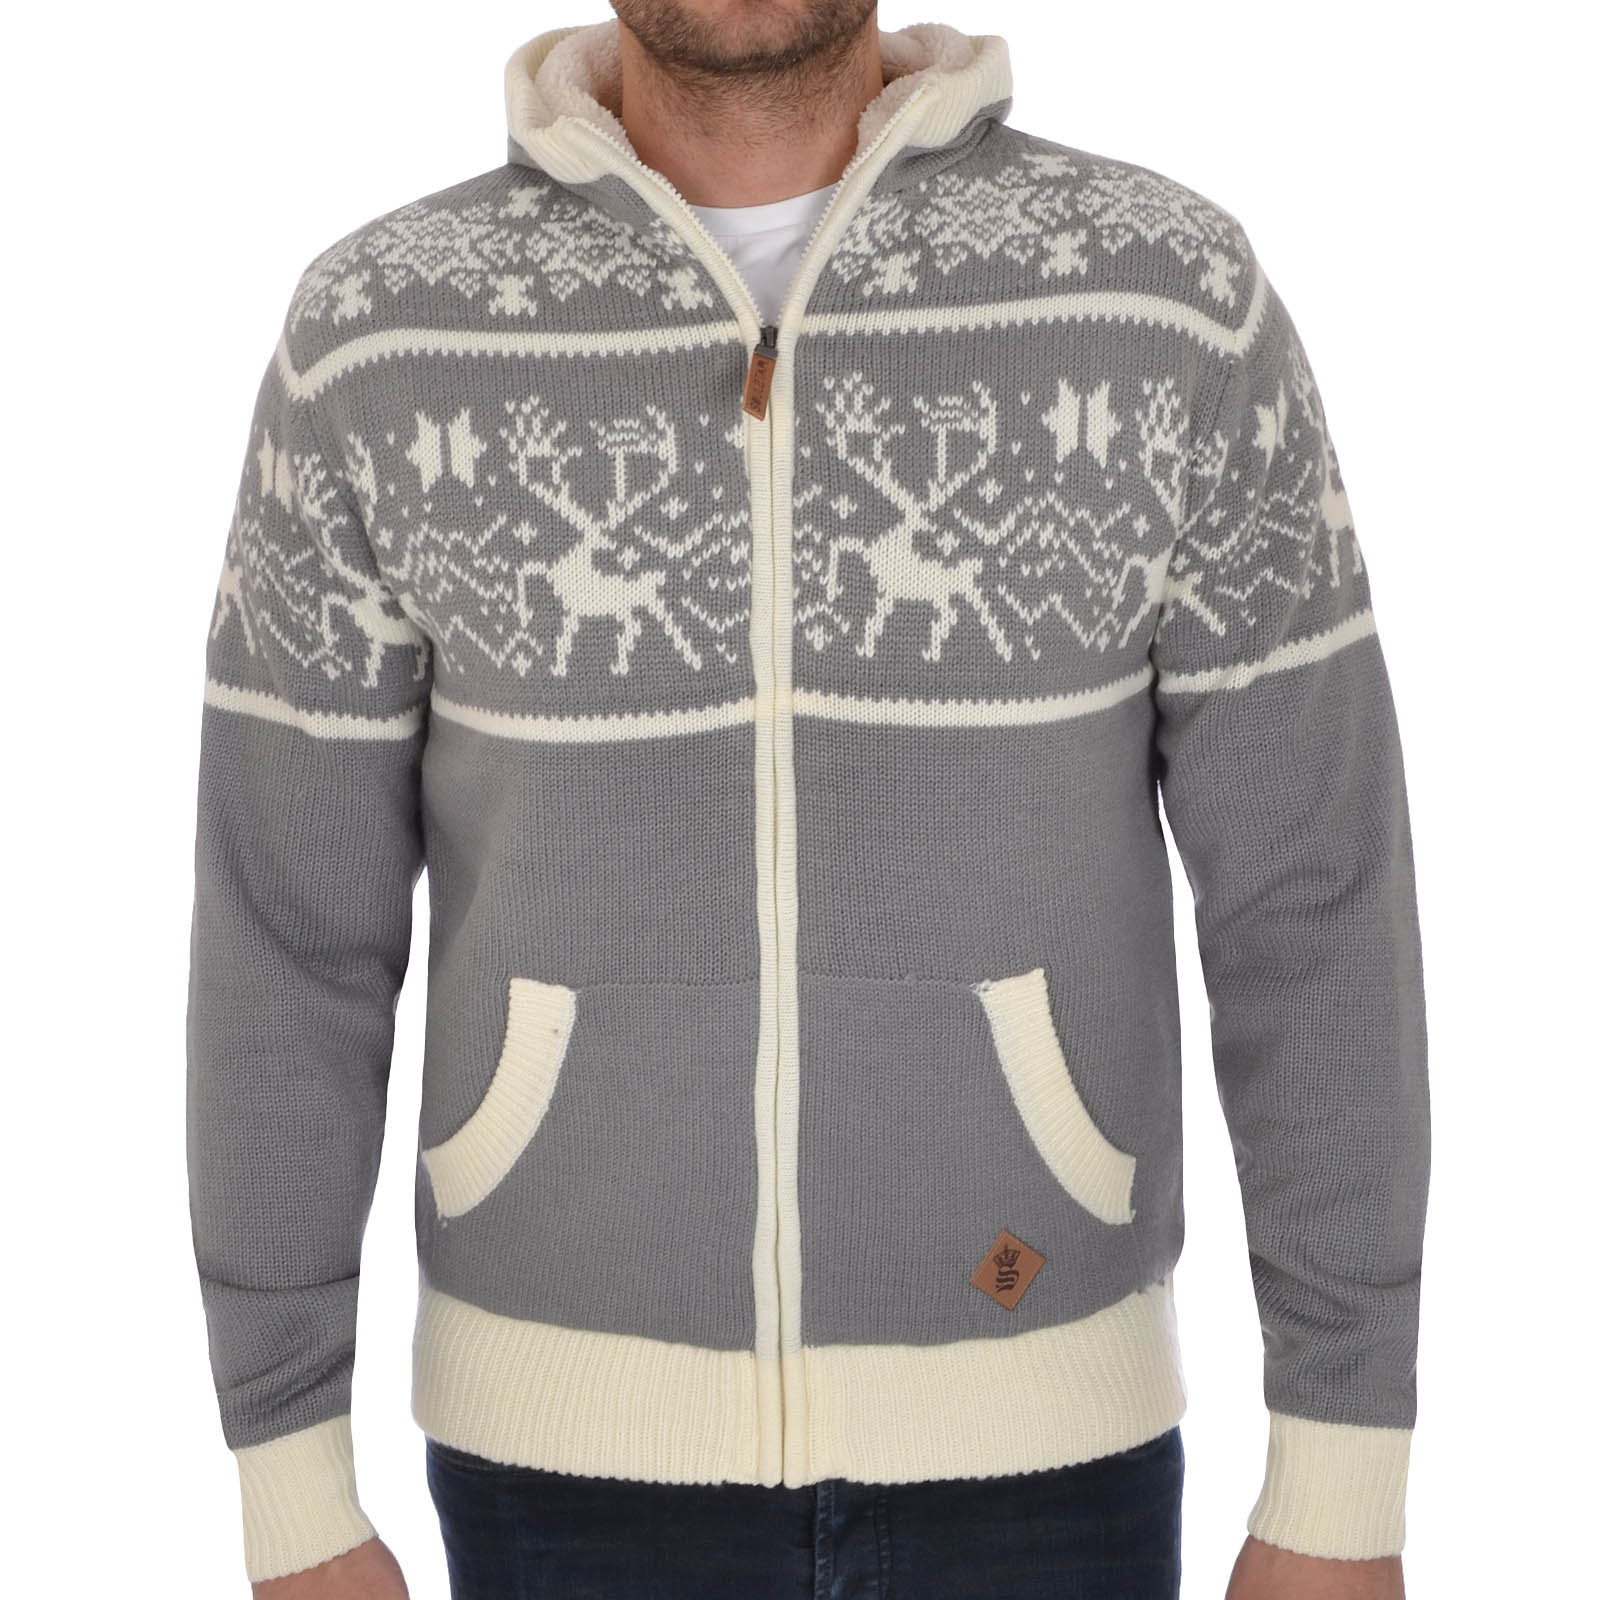 Soul Star Mens Knitted Zip up Hooded Cardigan Christmas Jumper ...